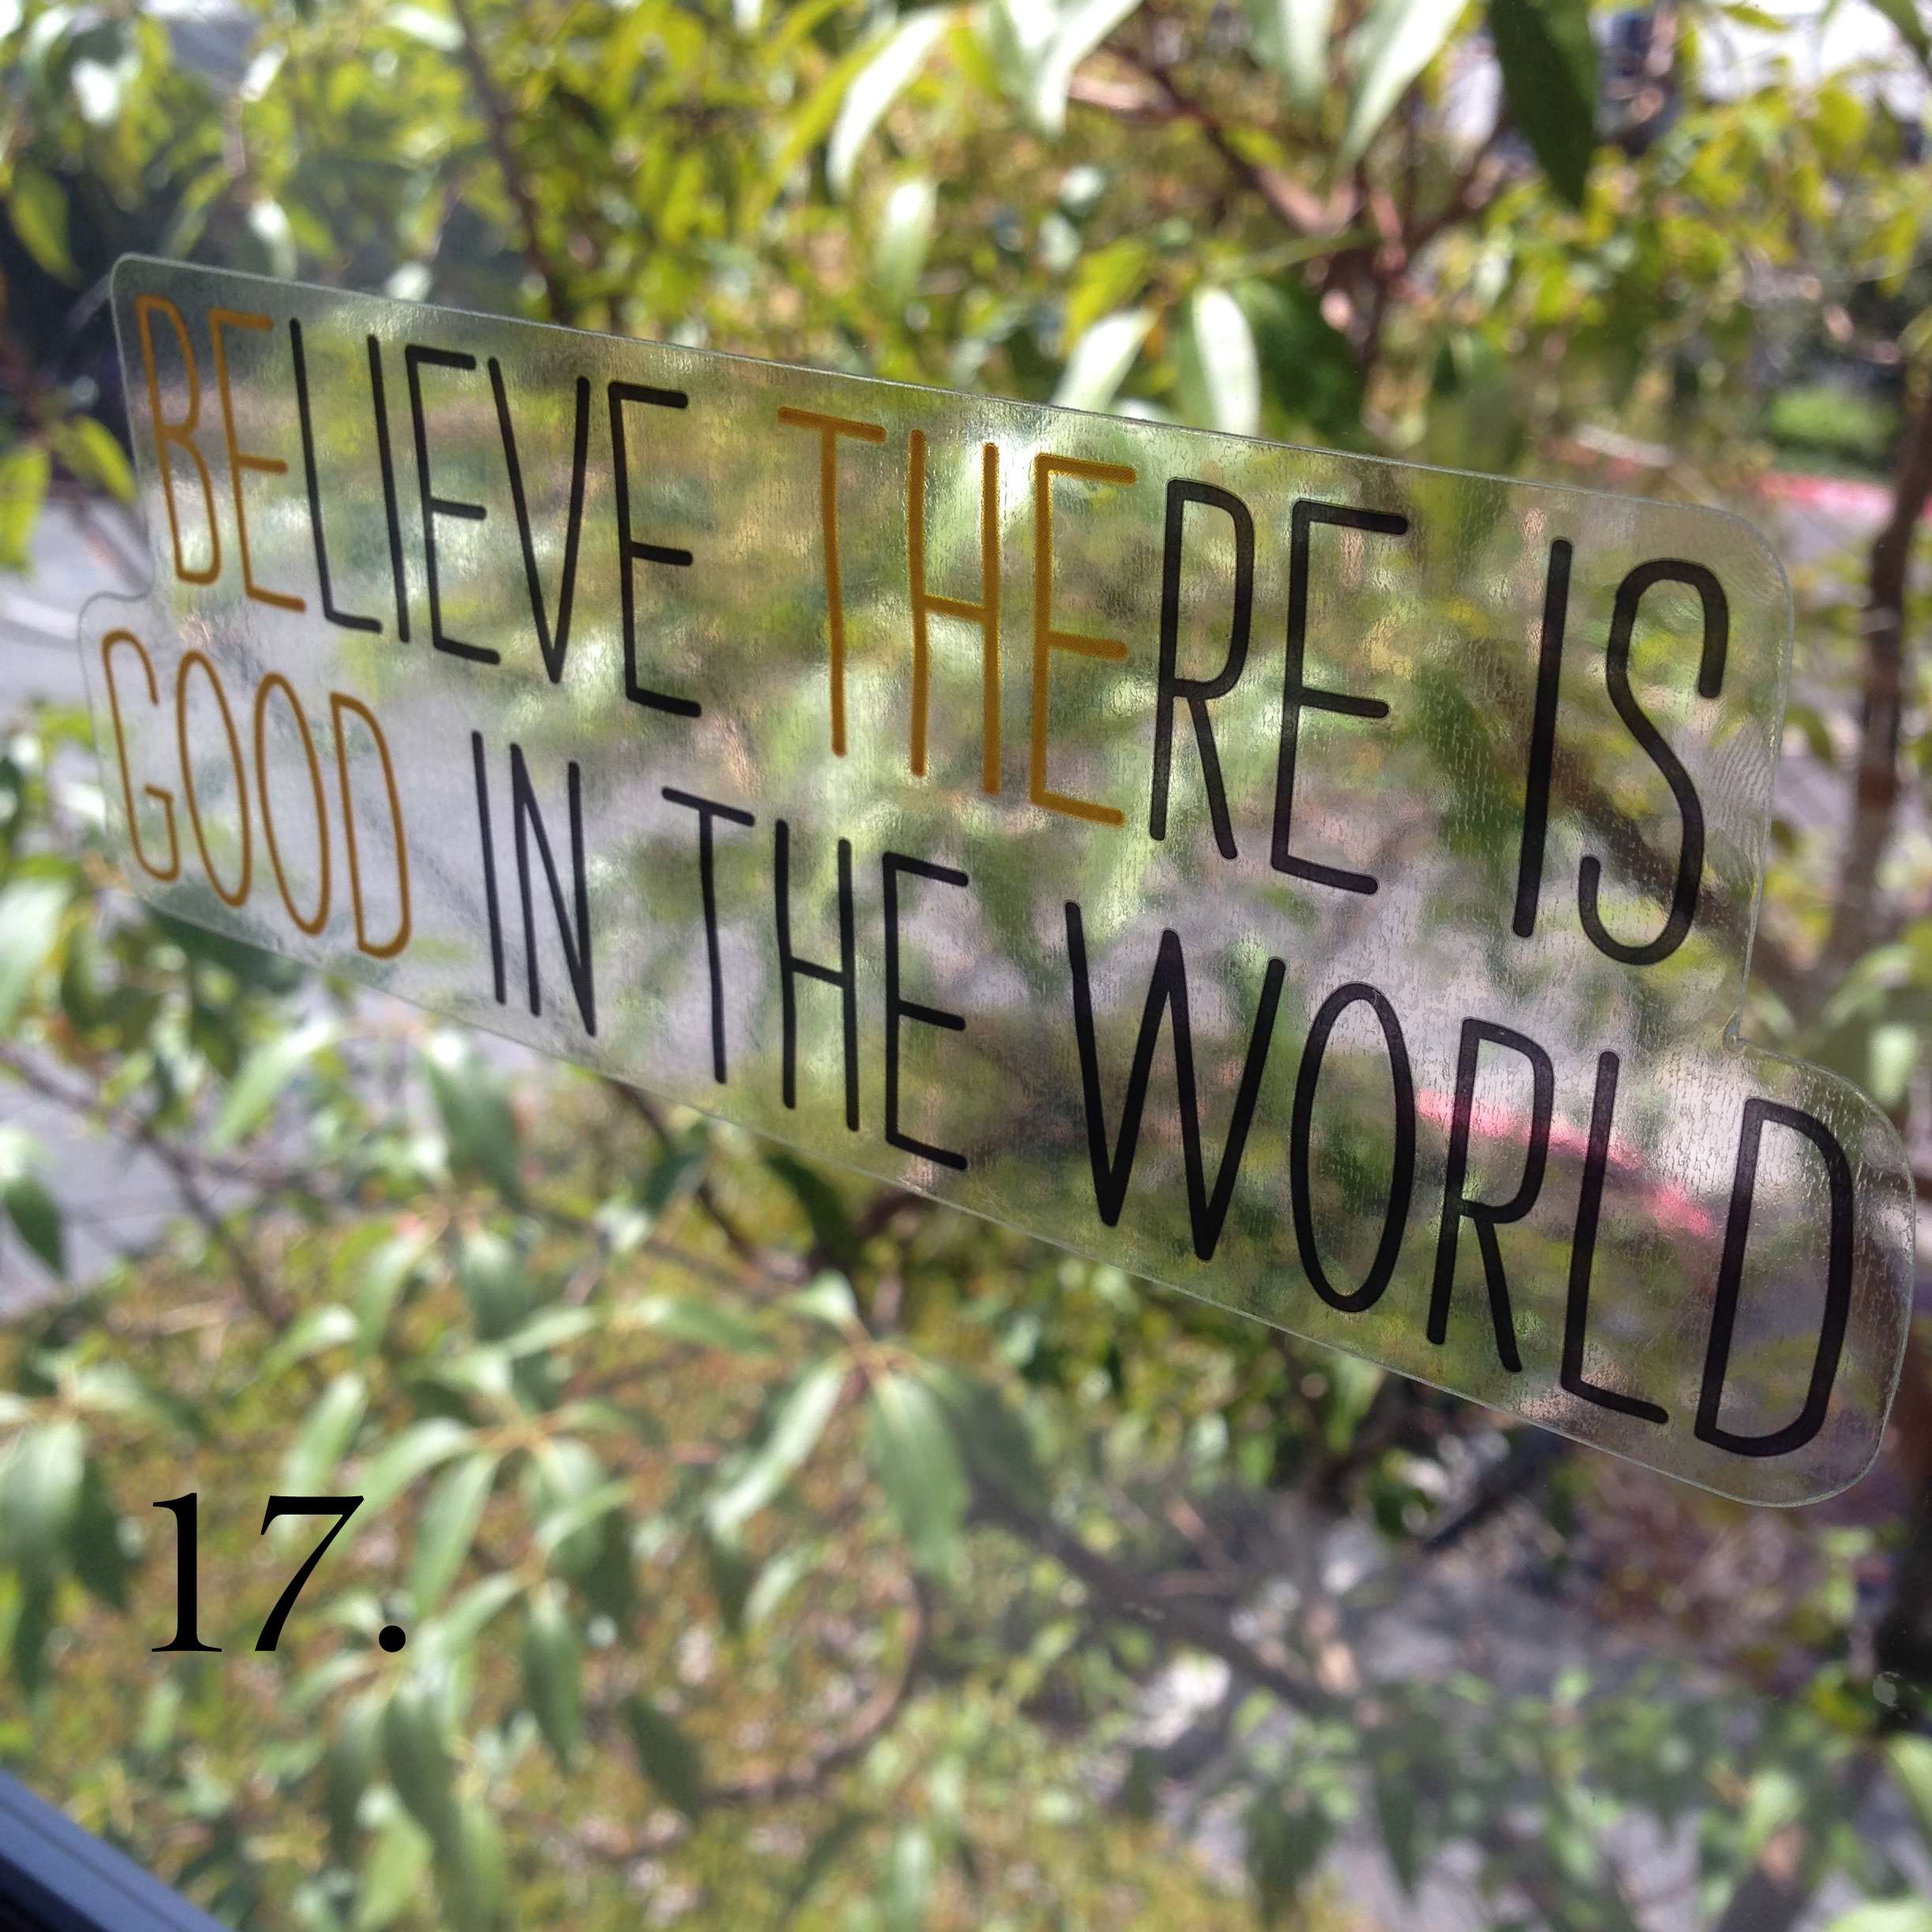 17. Be the good in the world inspirational sticker on window. DIY  New jumbo mambi stickers from Michaels. .jpg